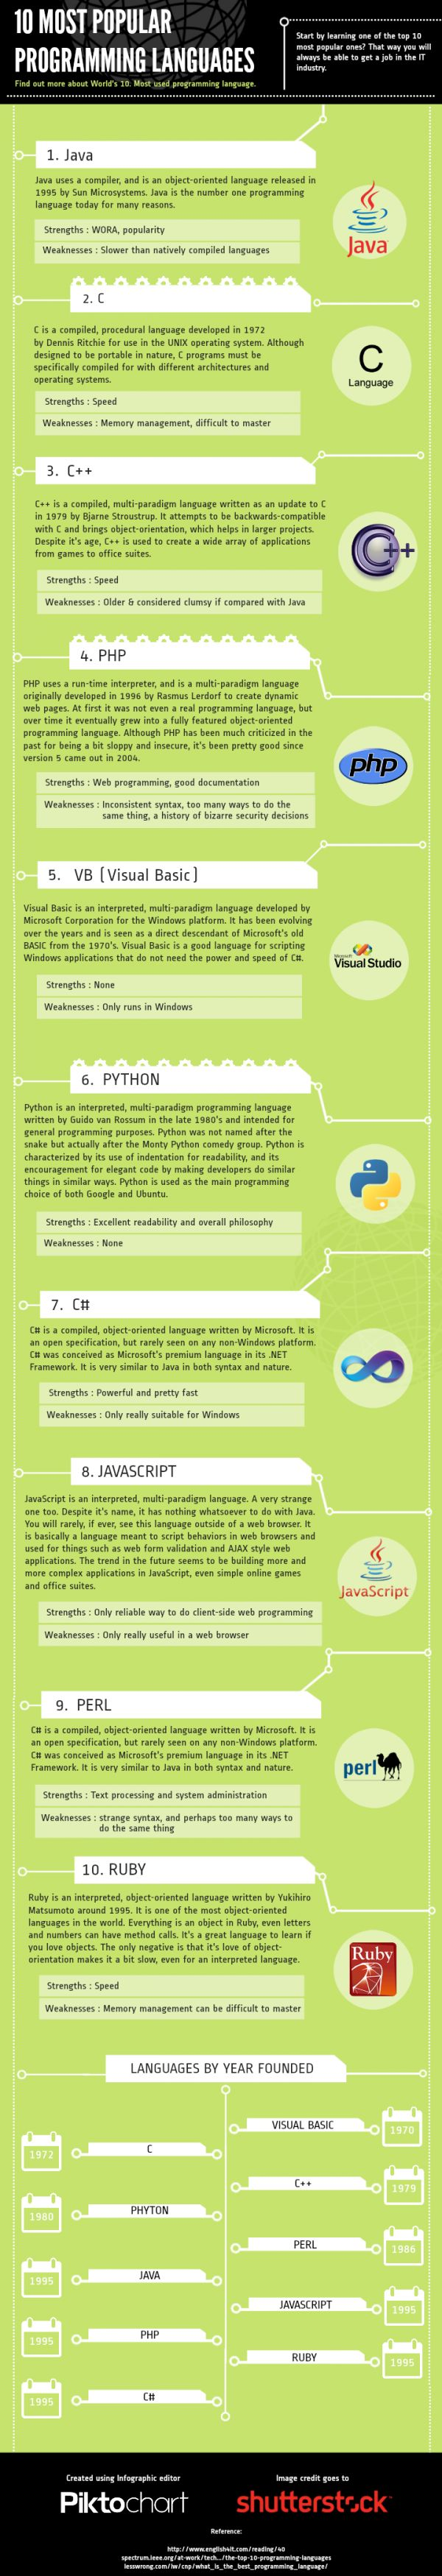 Top 10 programming languages | Created in #free @Piktochart #Infographic Editor at www.piktochart.com